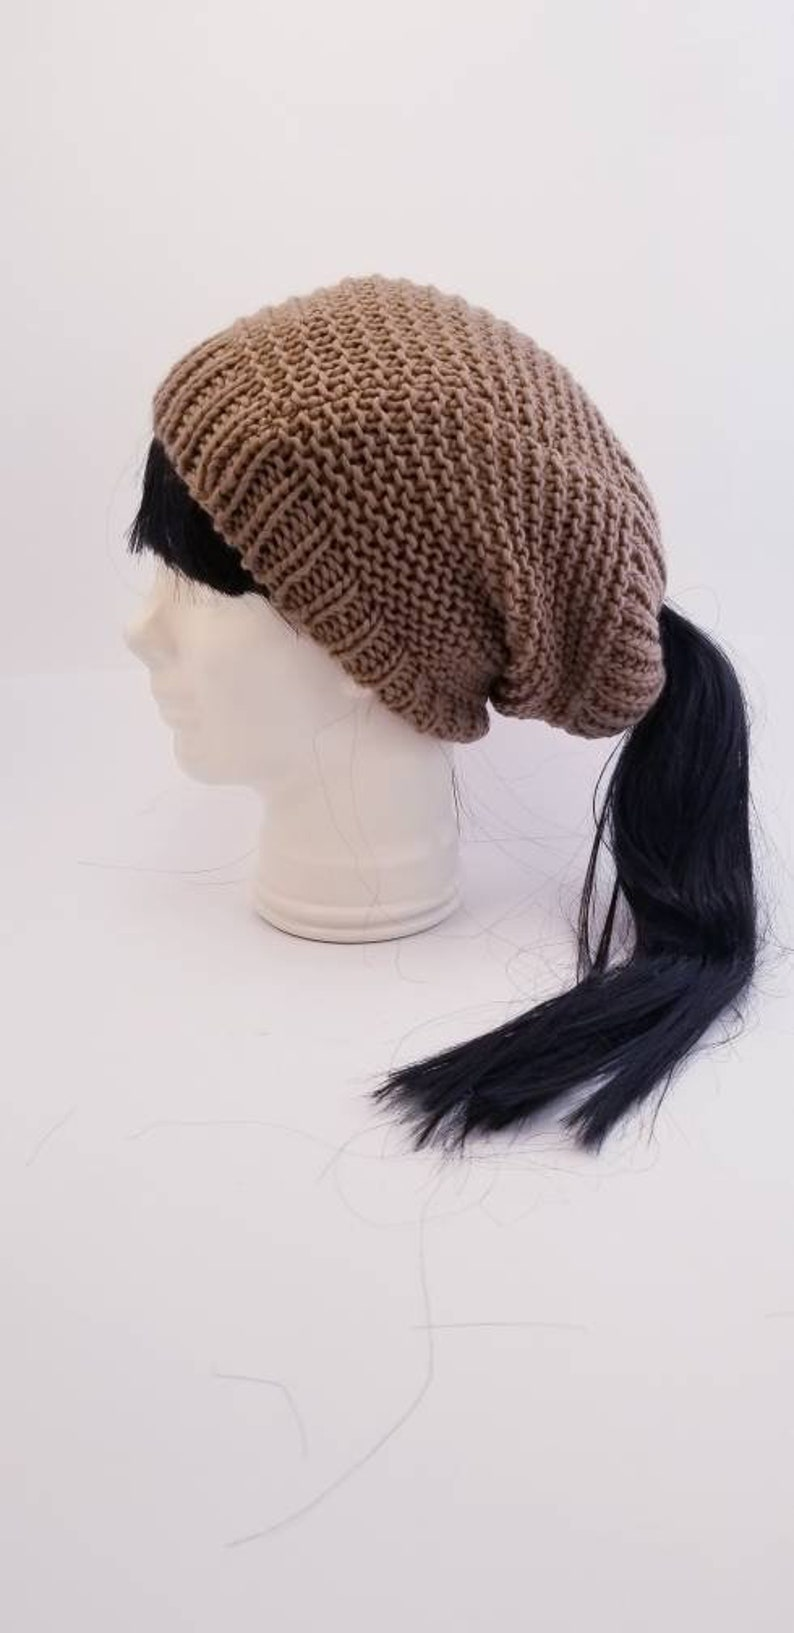 Taupe slouchy beanie with an elastic ponytail top opening great for any winter activity with style the comfort and the warmth.